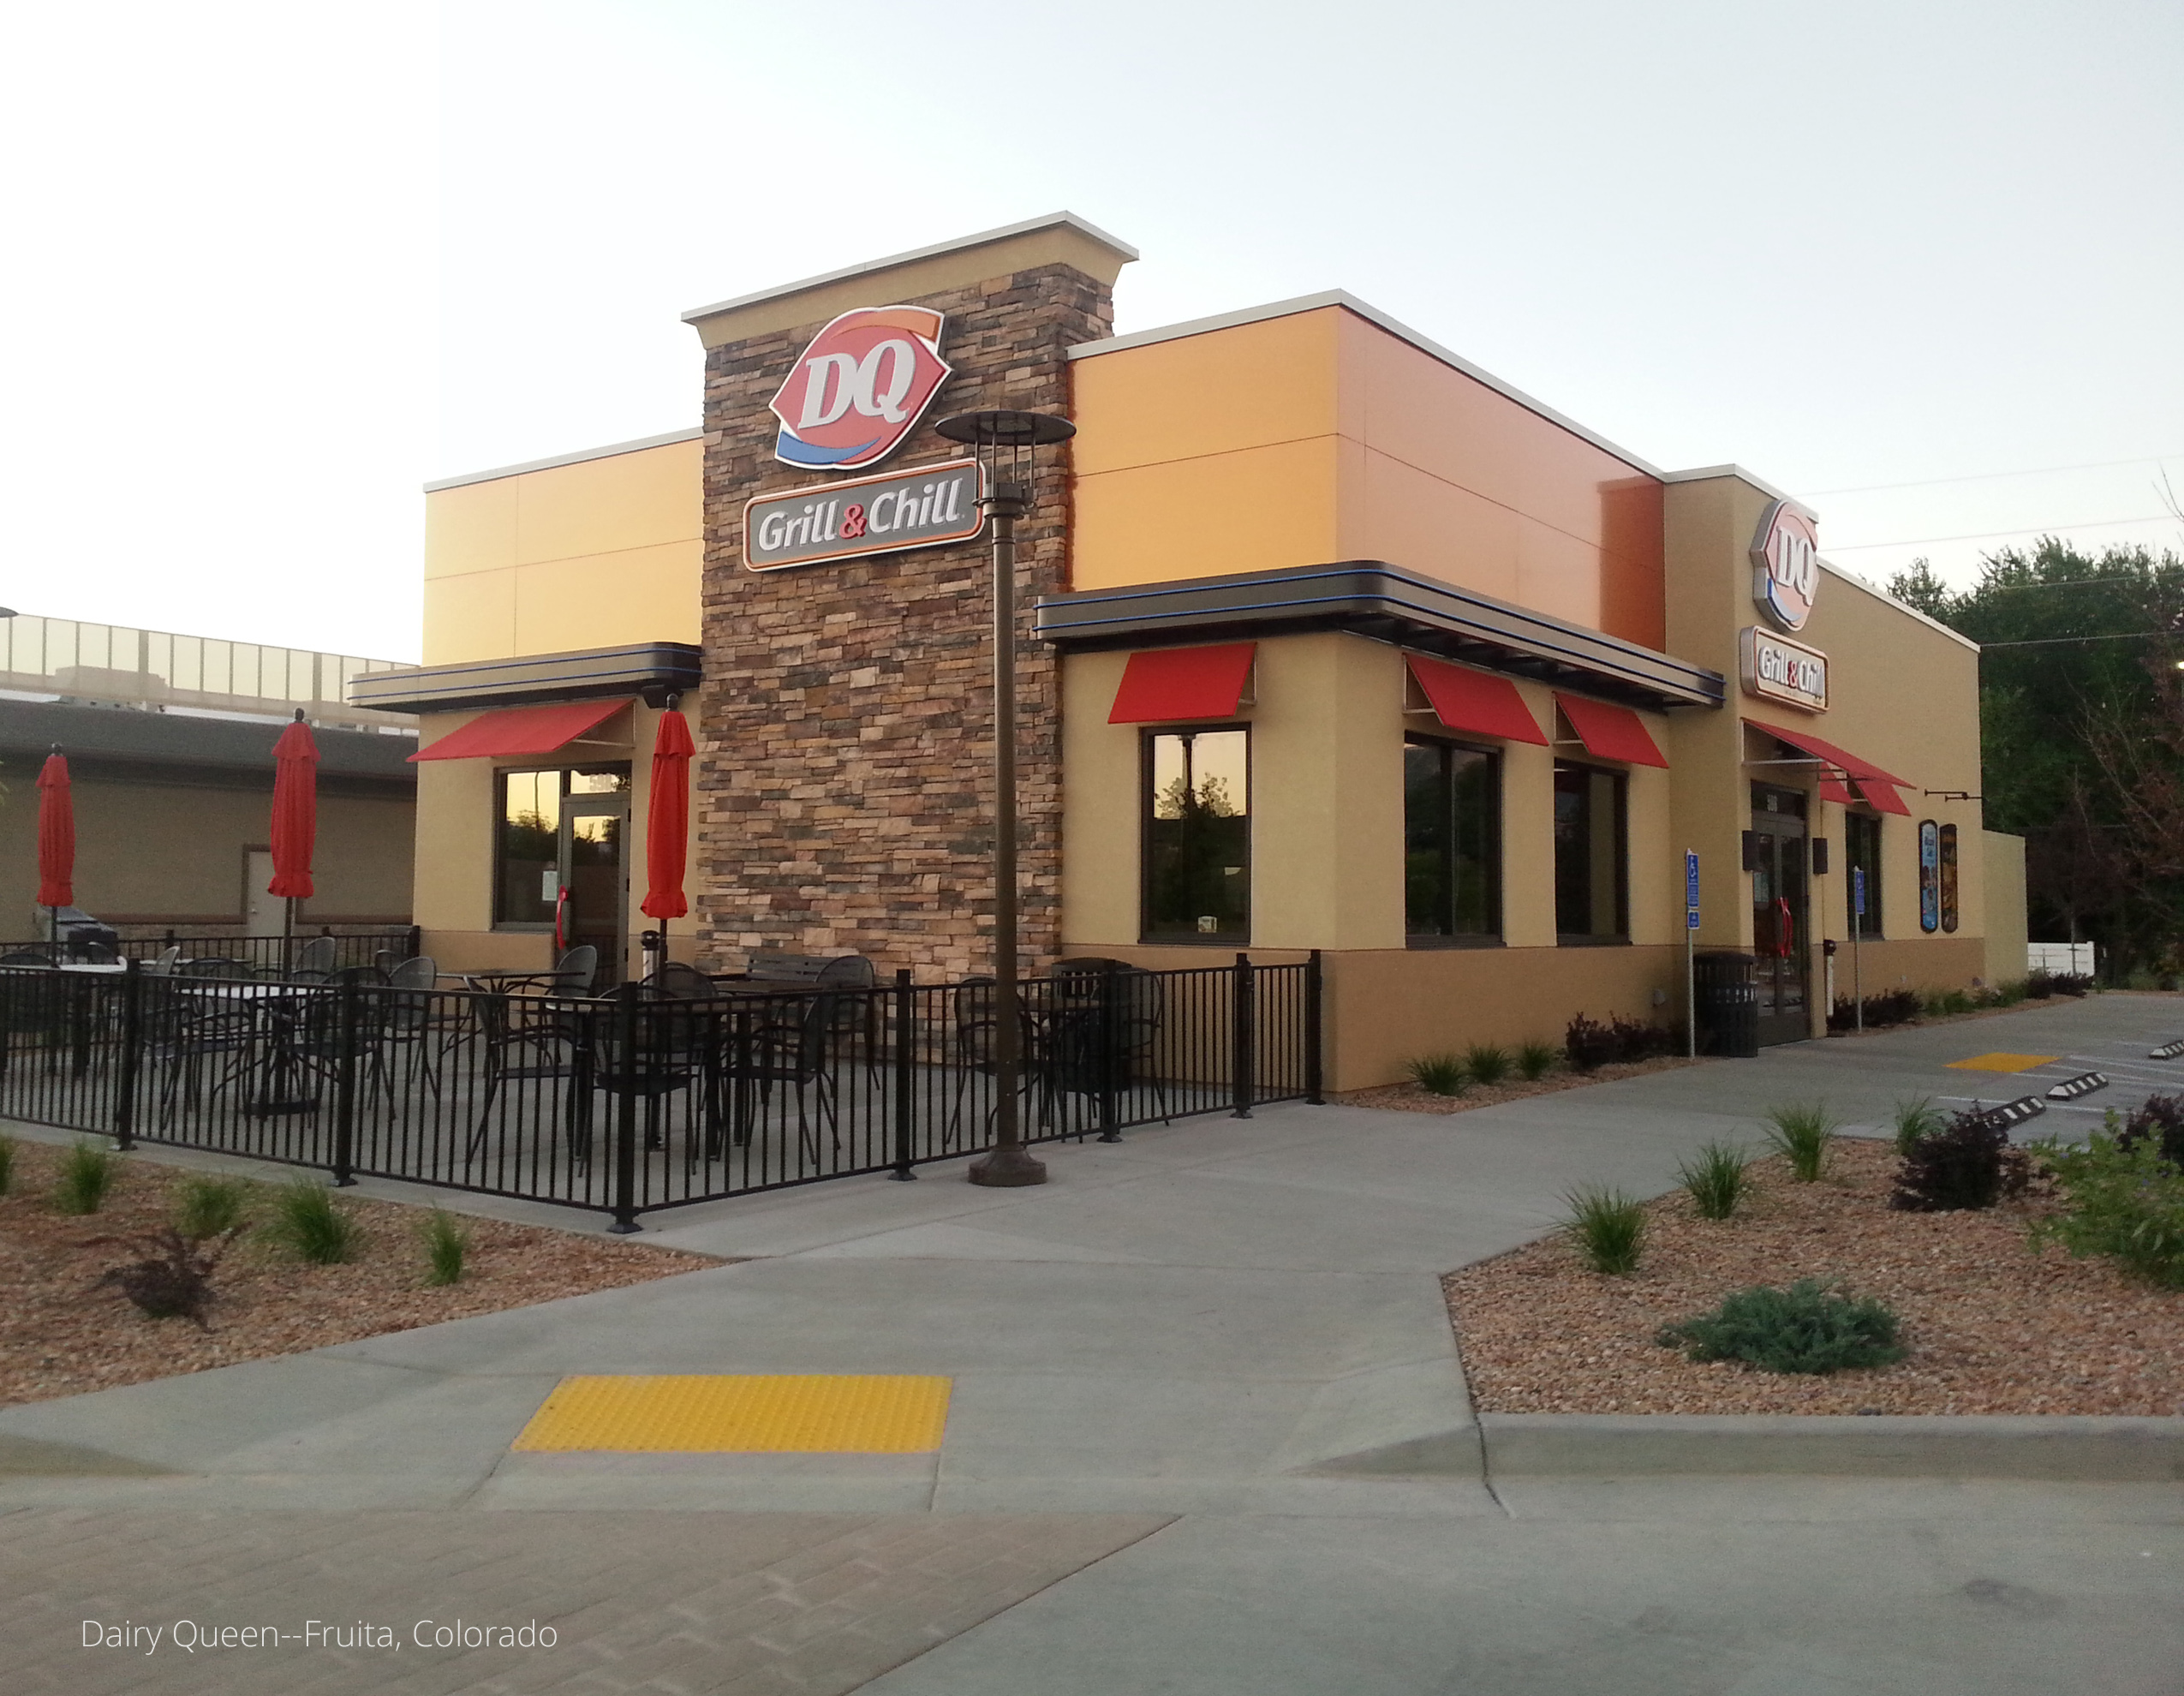 Dairy Queen--Fruita, Colorado